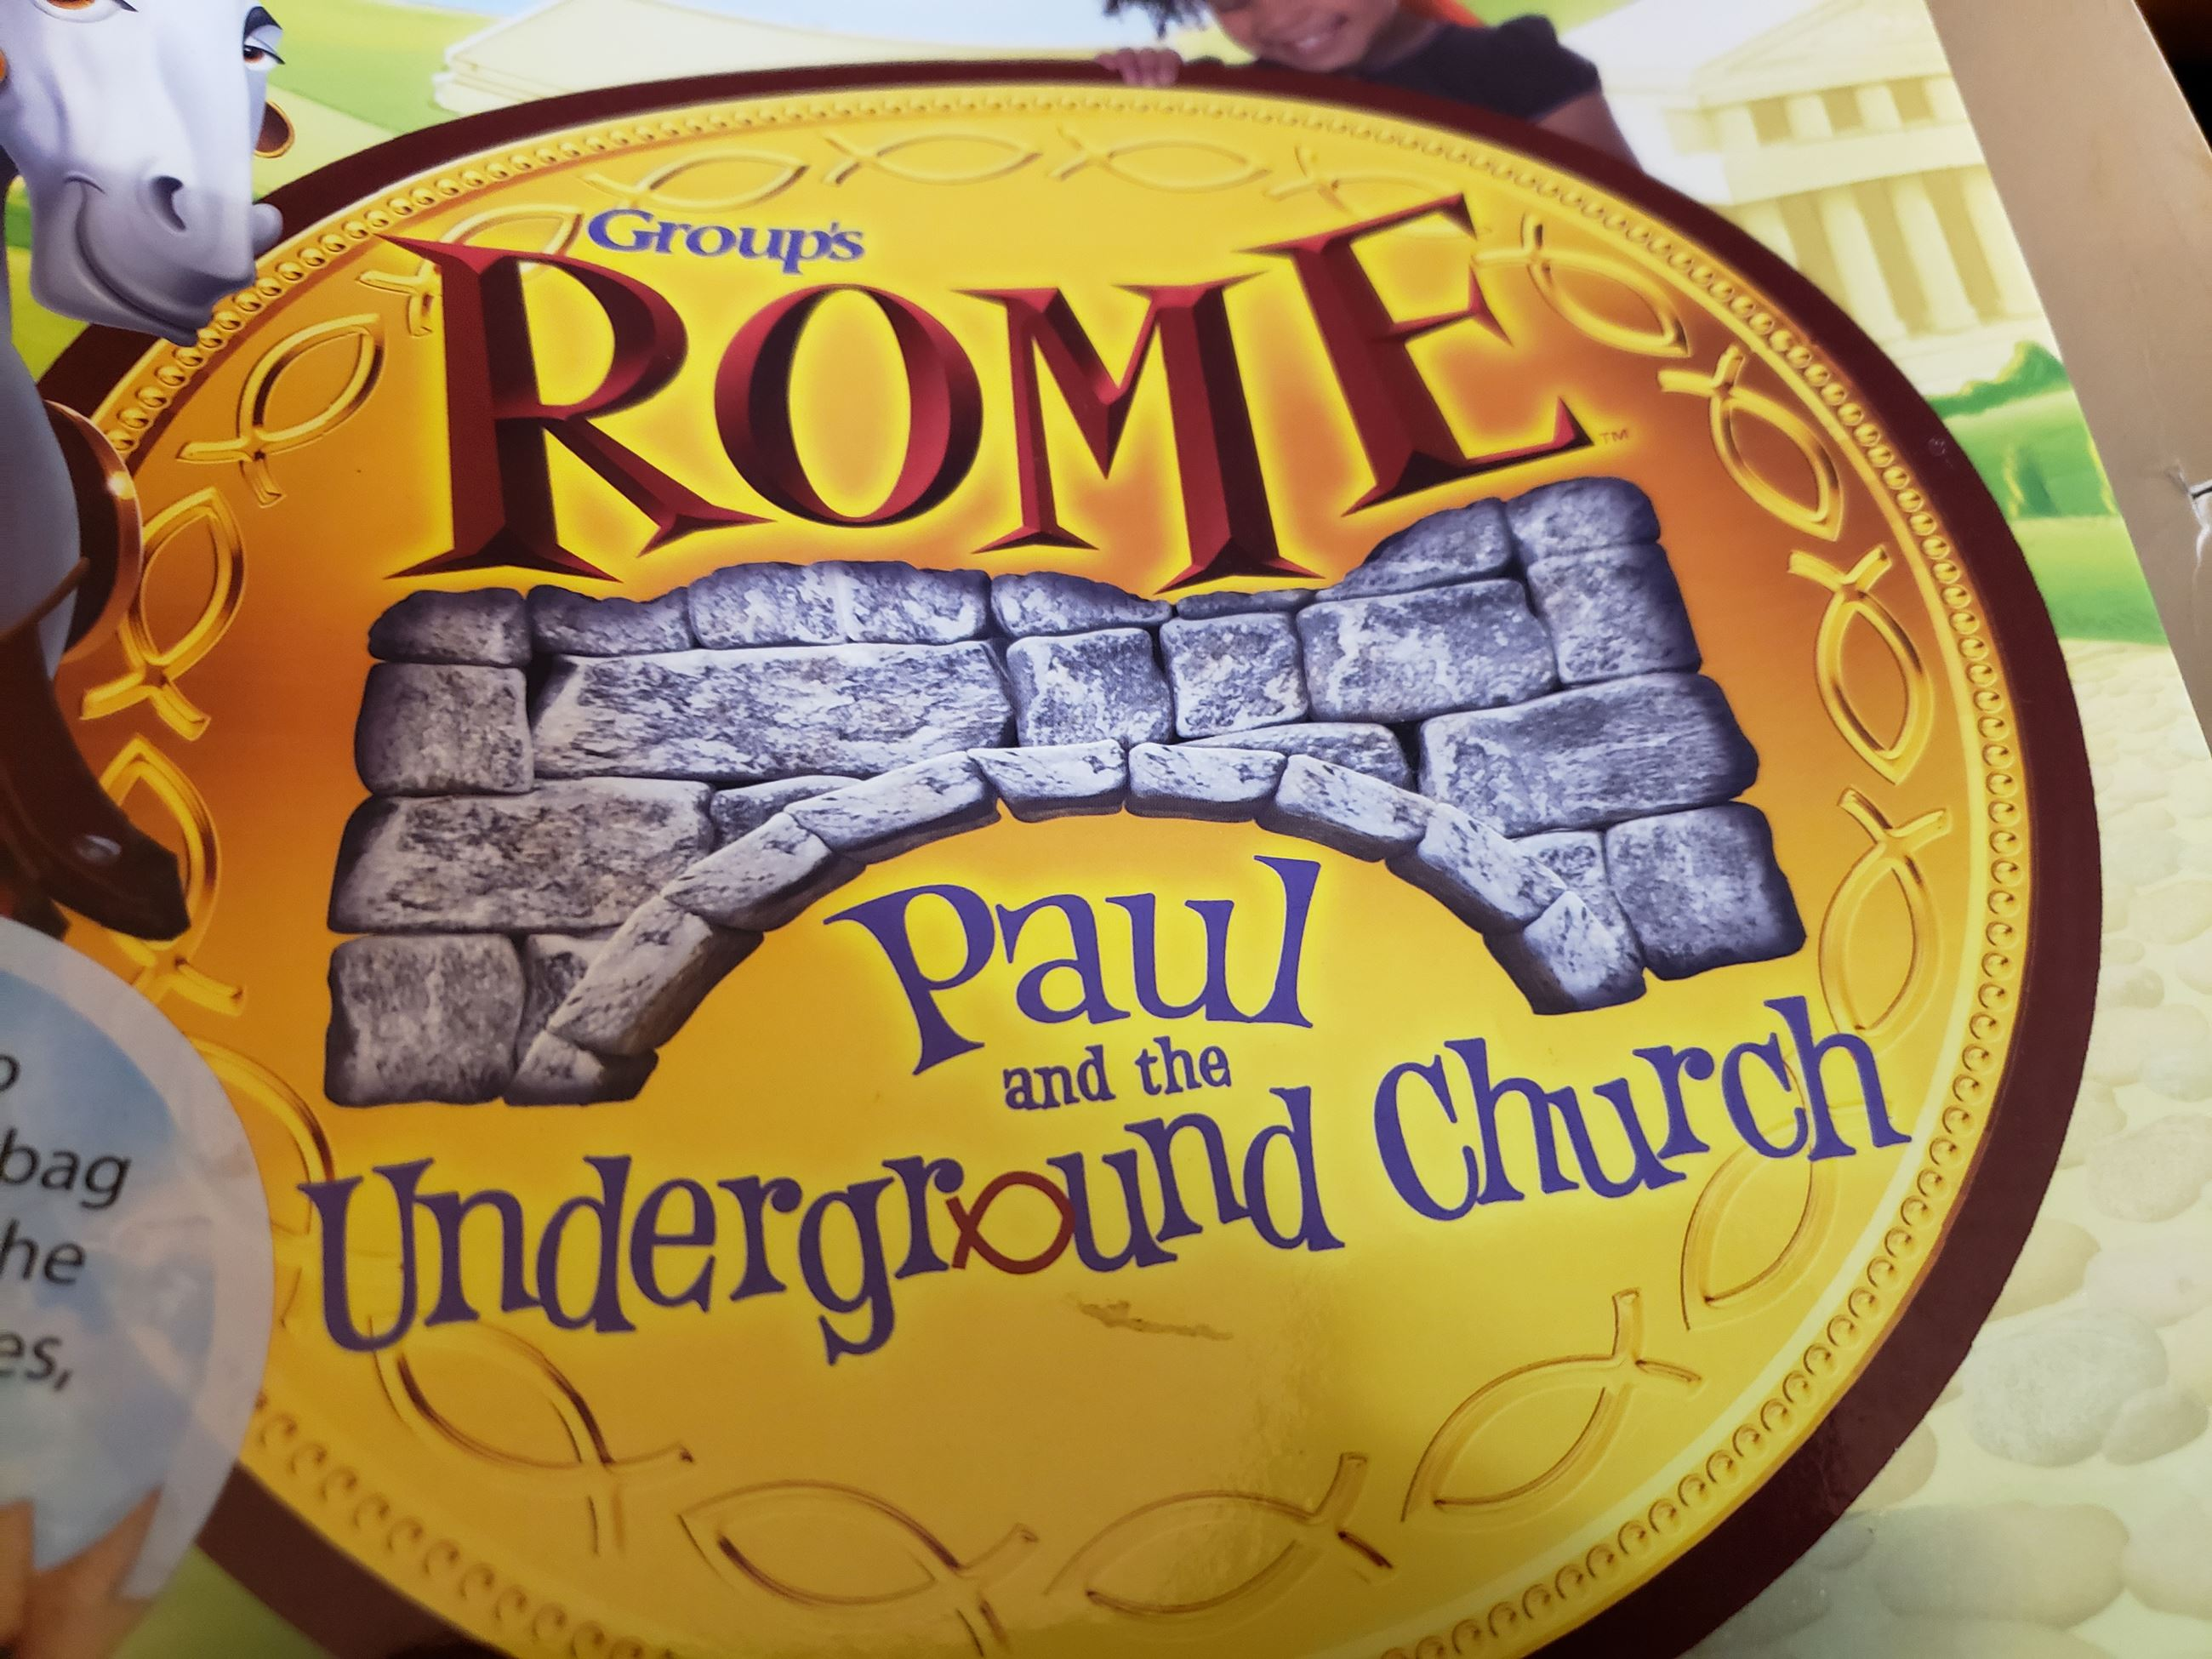 Cornerstone Baptist Church: Vacation Bible School. Rome: Paul and the Underground Church